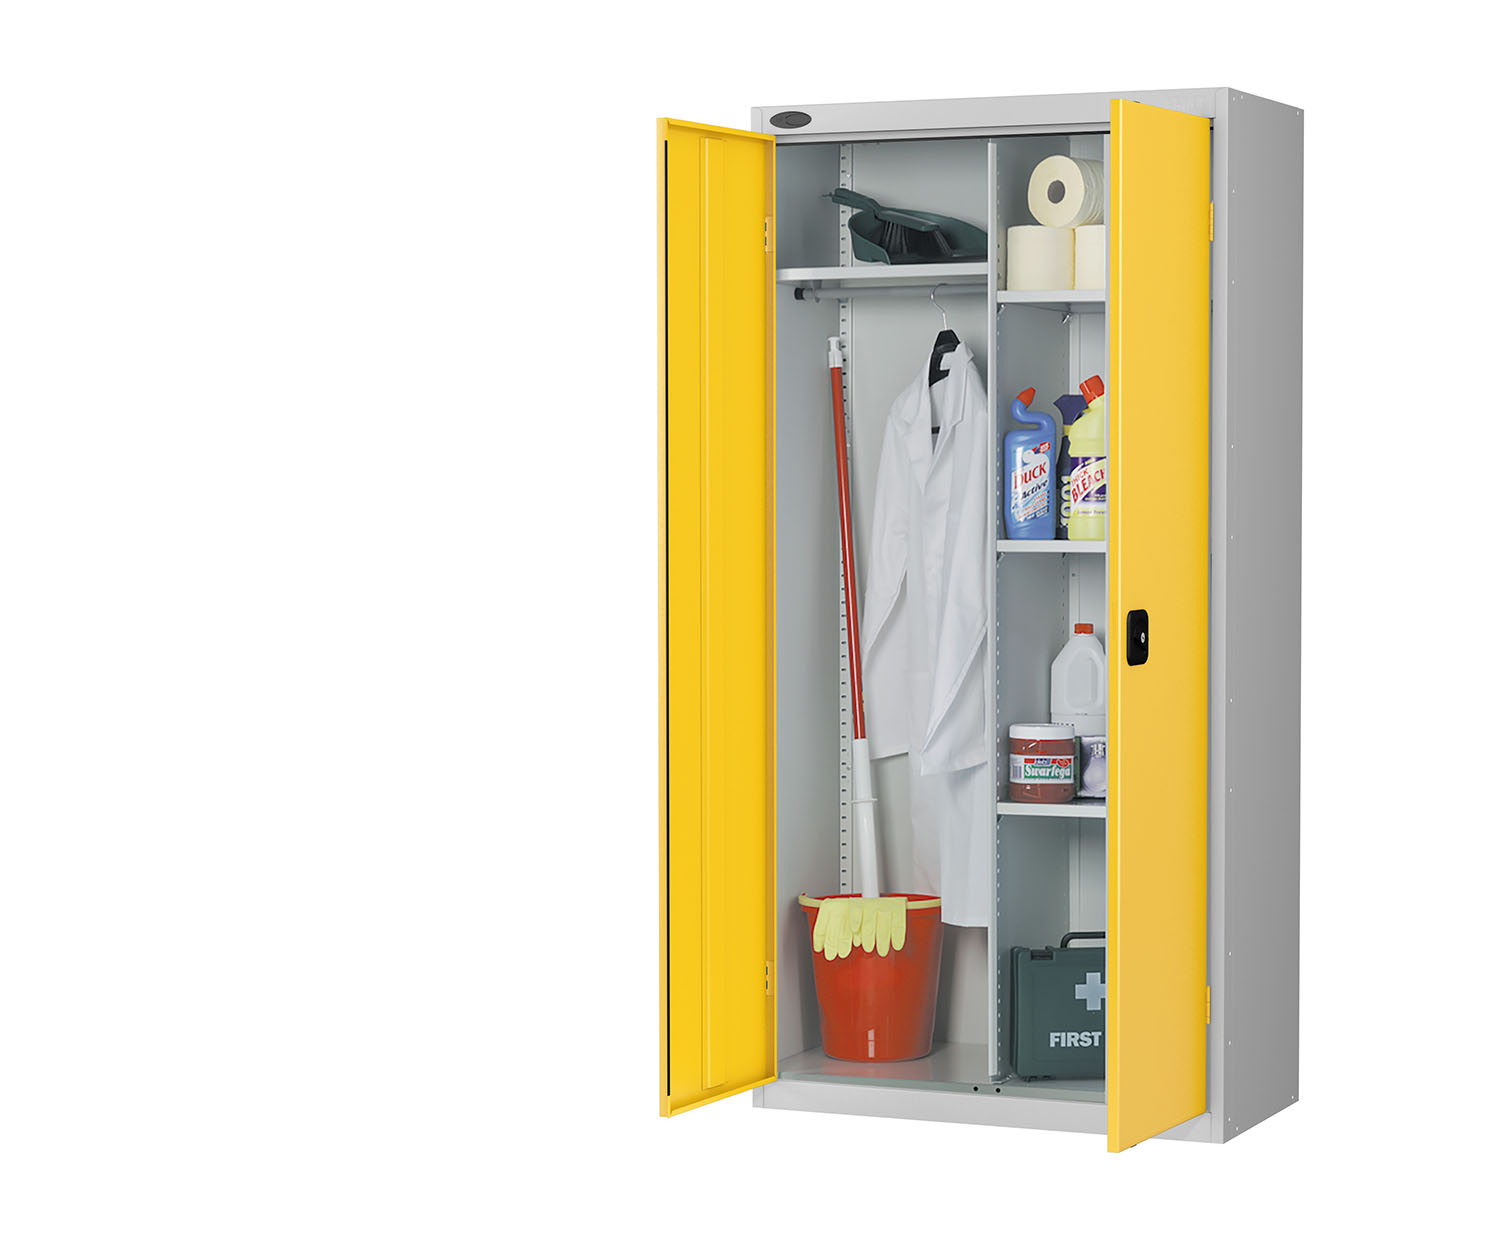 Probe cupboard wardrobe yellow